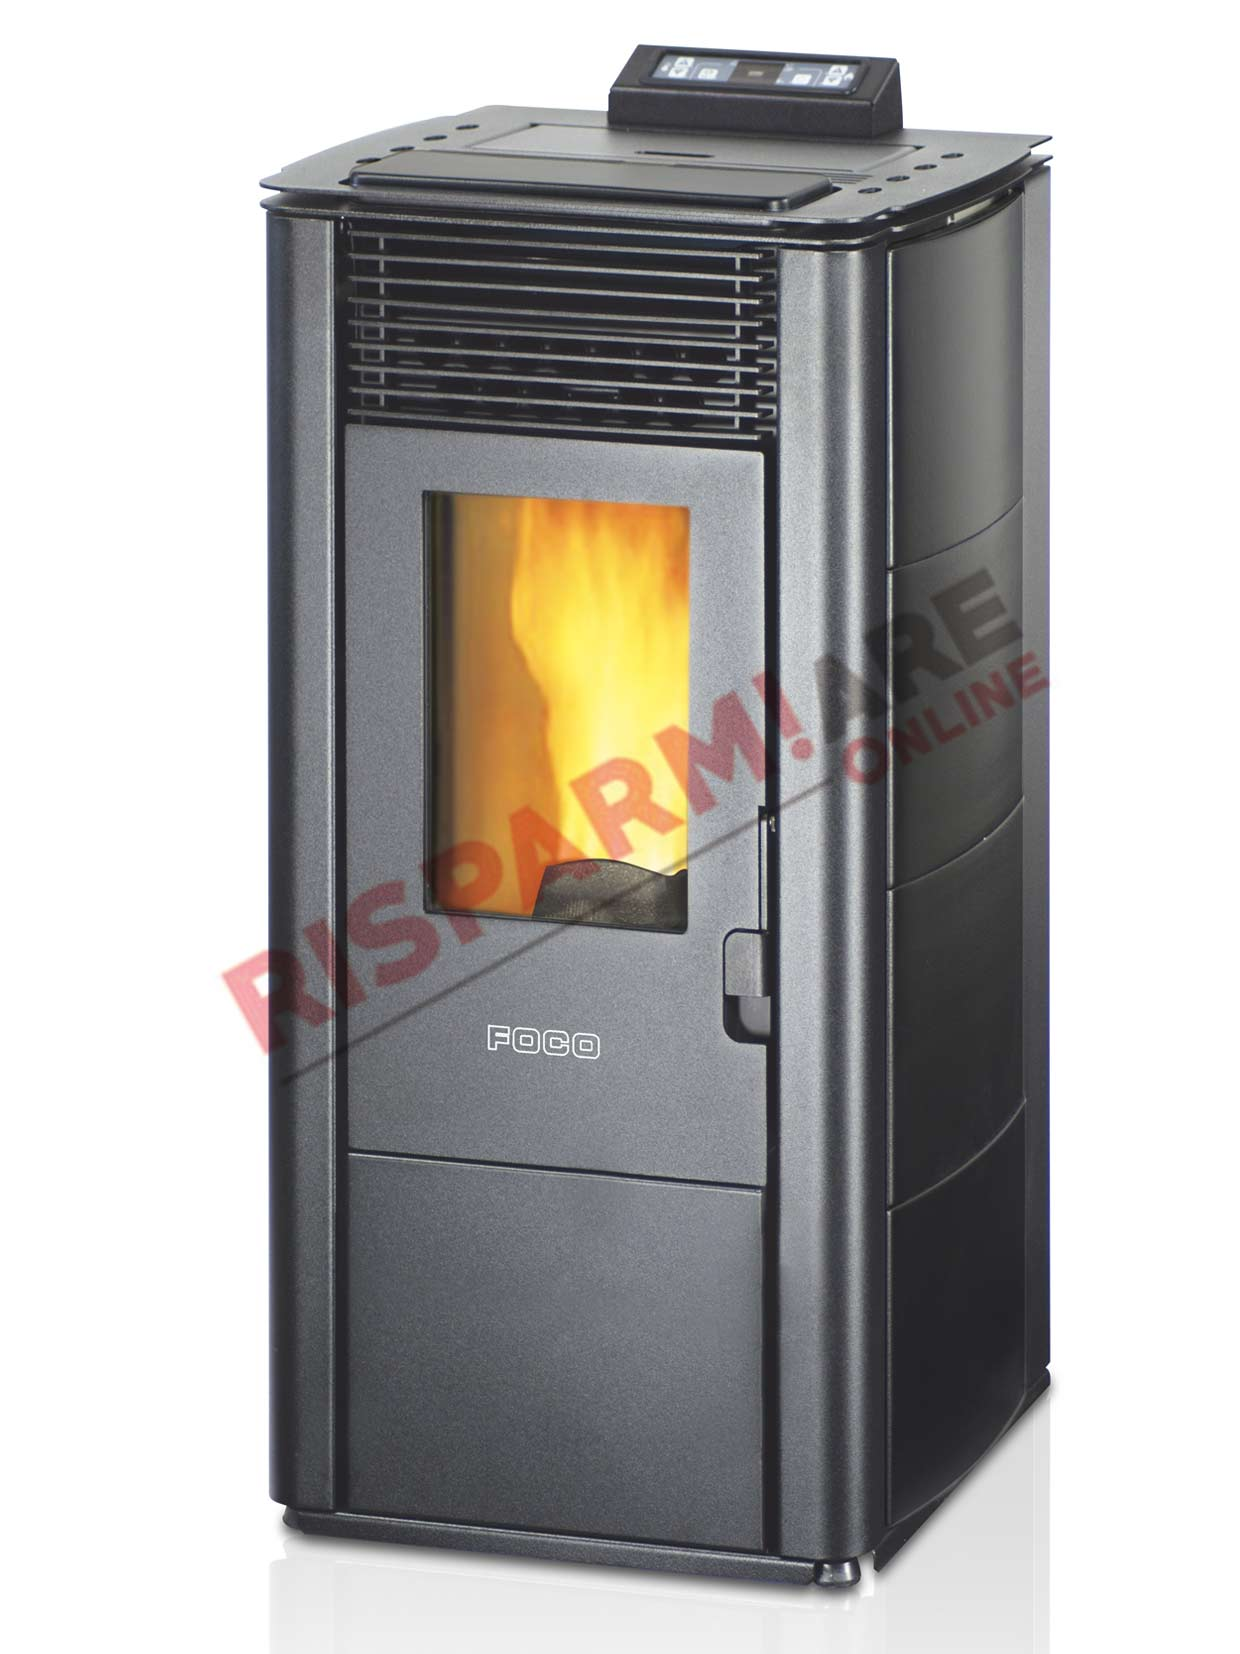 Foco stufa a pellet traditional majolica 12c 10 10kw for Foco stufe pellet